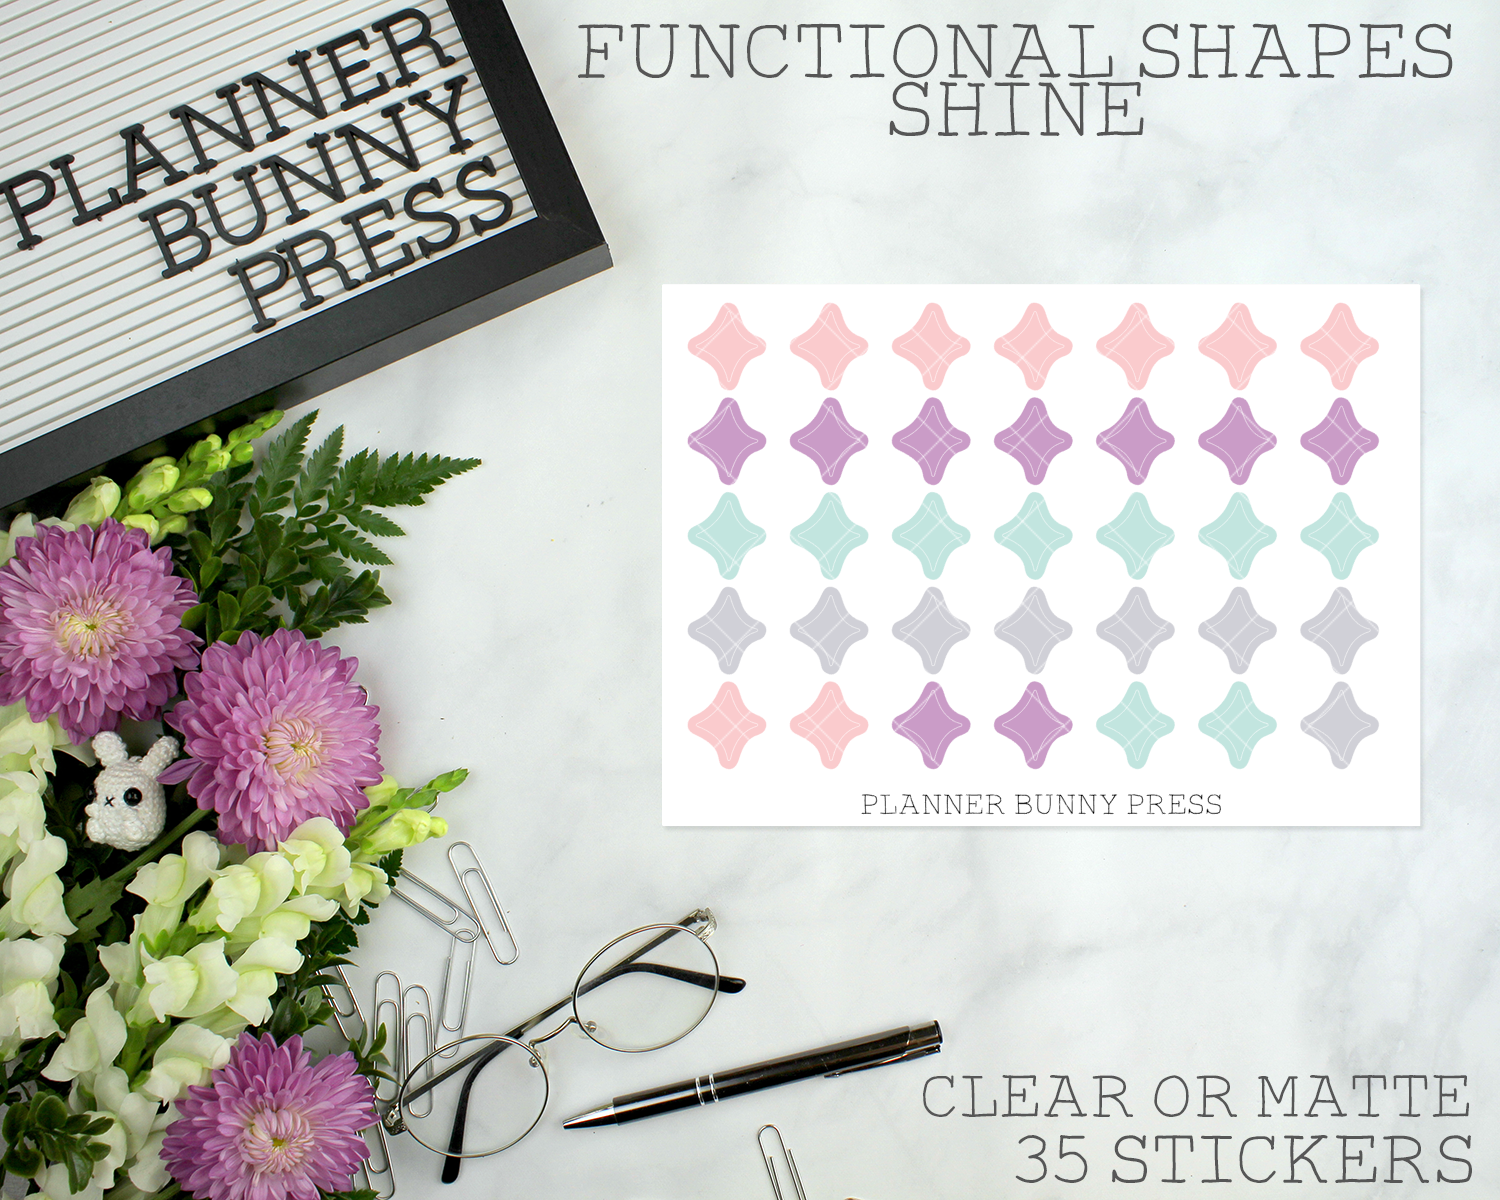 Shine | Functional Shapes